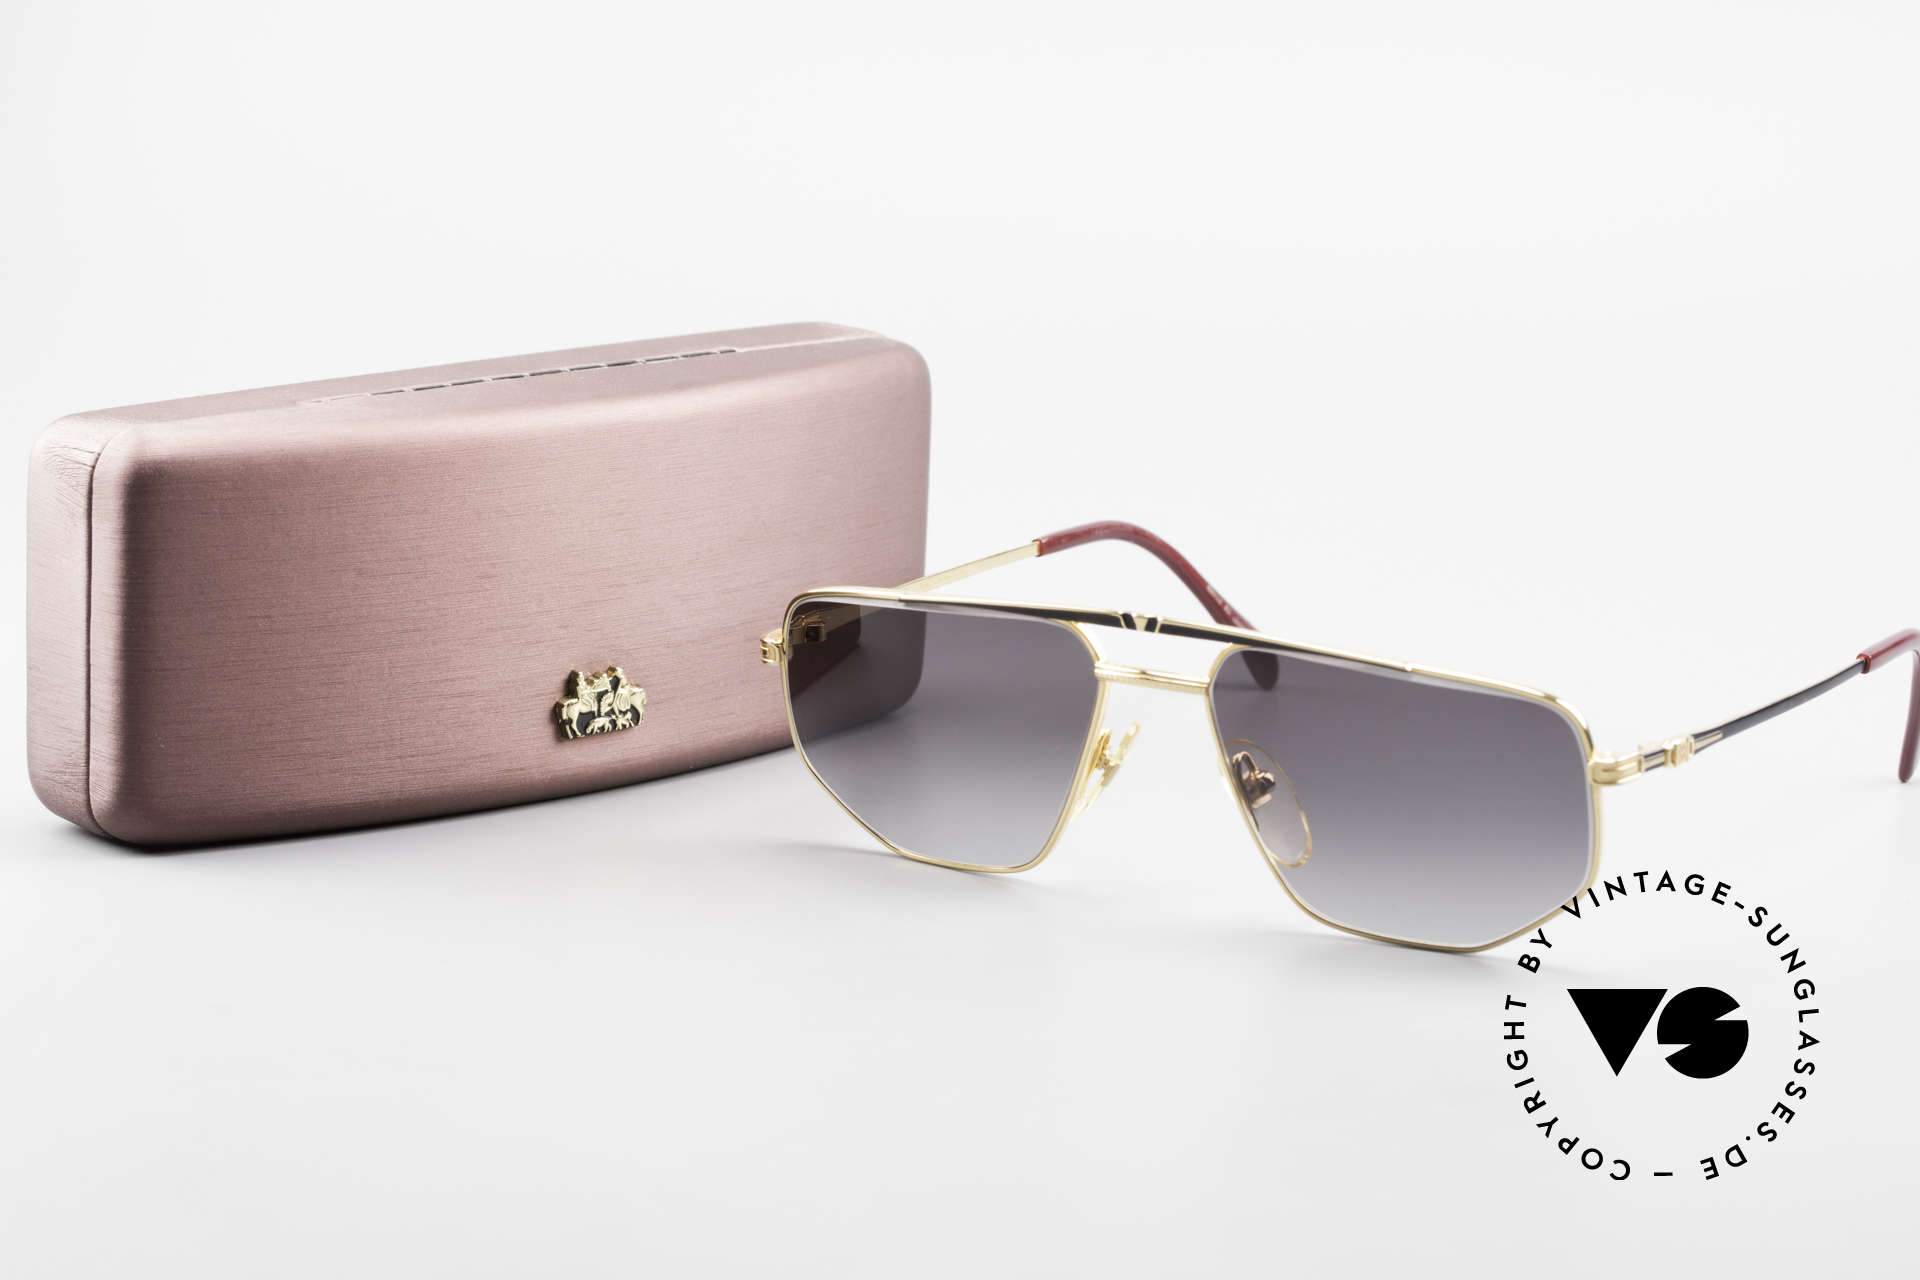 Roman Rothschild R1037 Gold Plated Shades Luxury, sun lenses (100%UV) can be replaced with prescriptions, Made for Men and Women